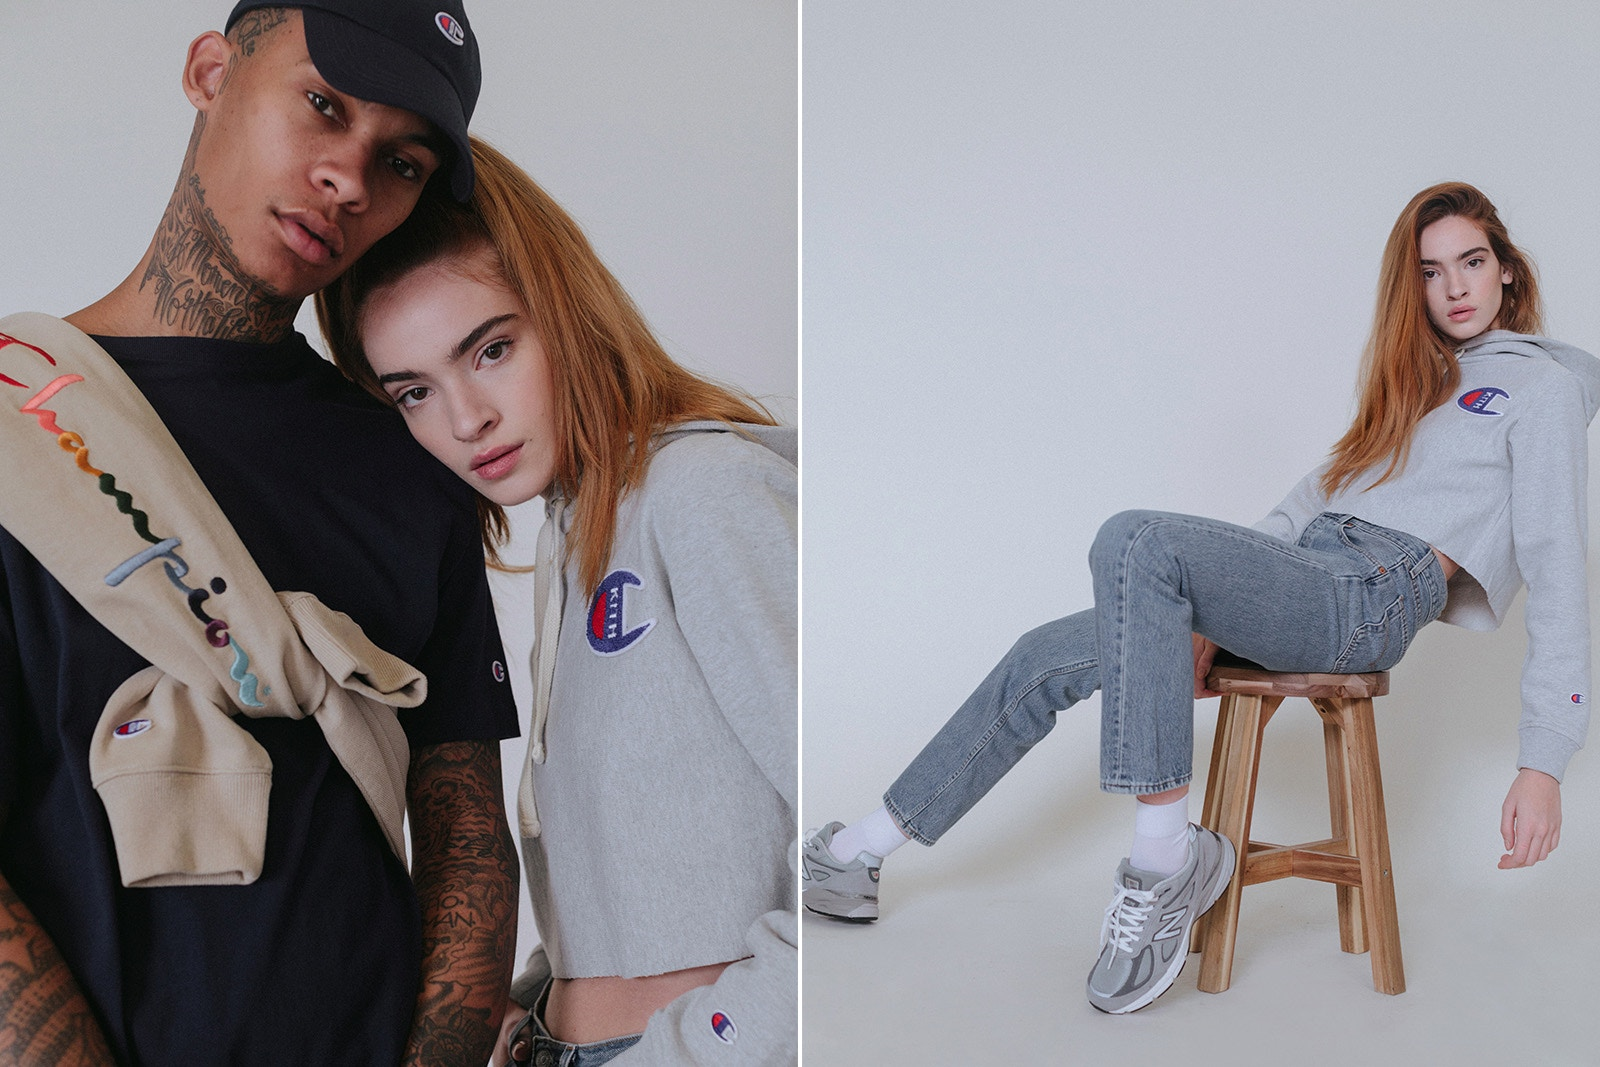 KITH rielabora il logo di Champion per una nuova capsule collection | Collater.al 15